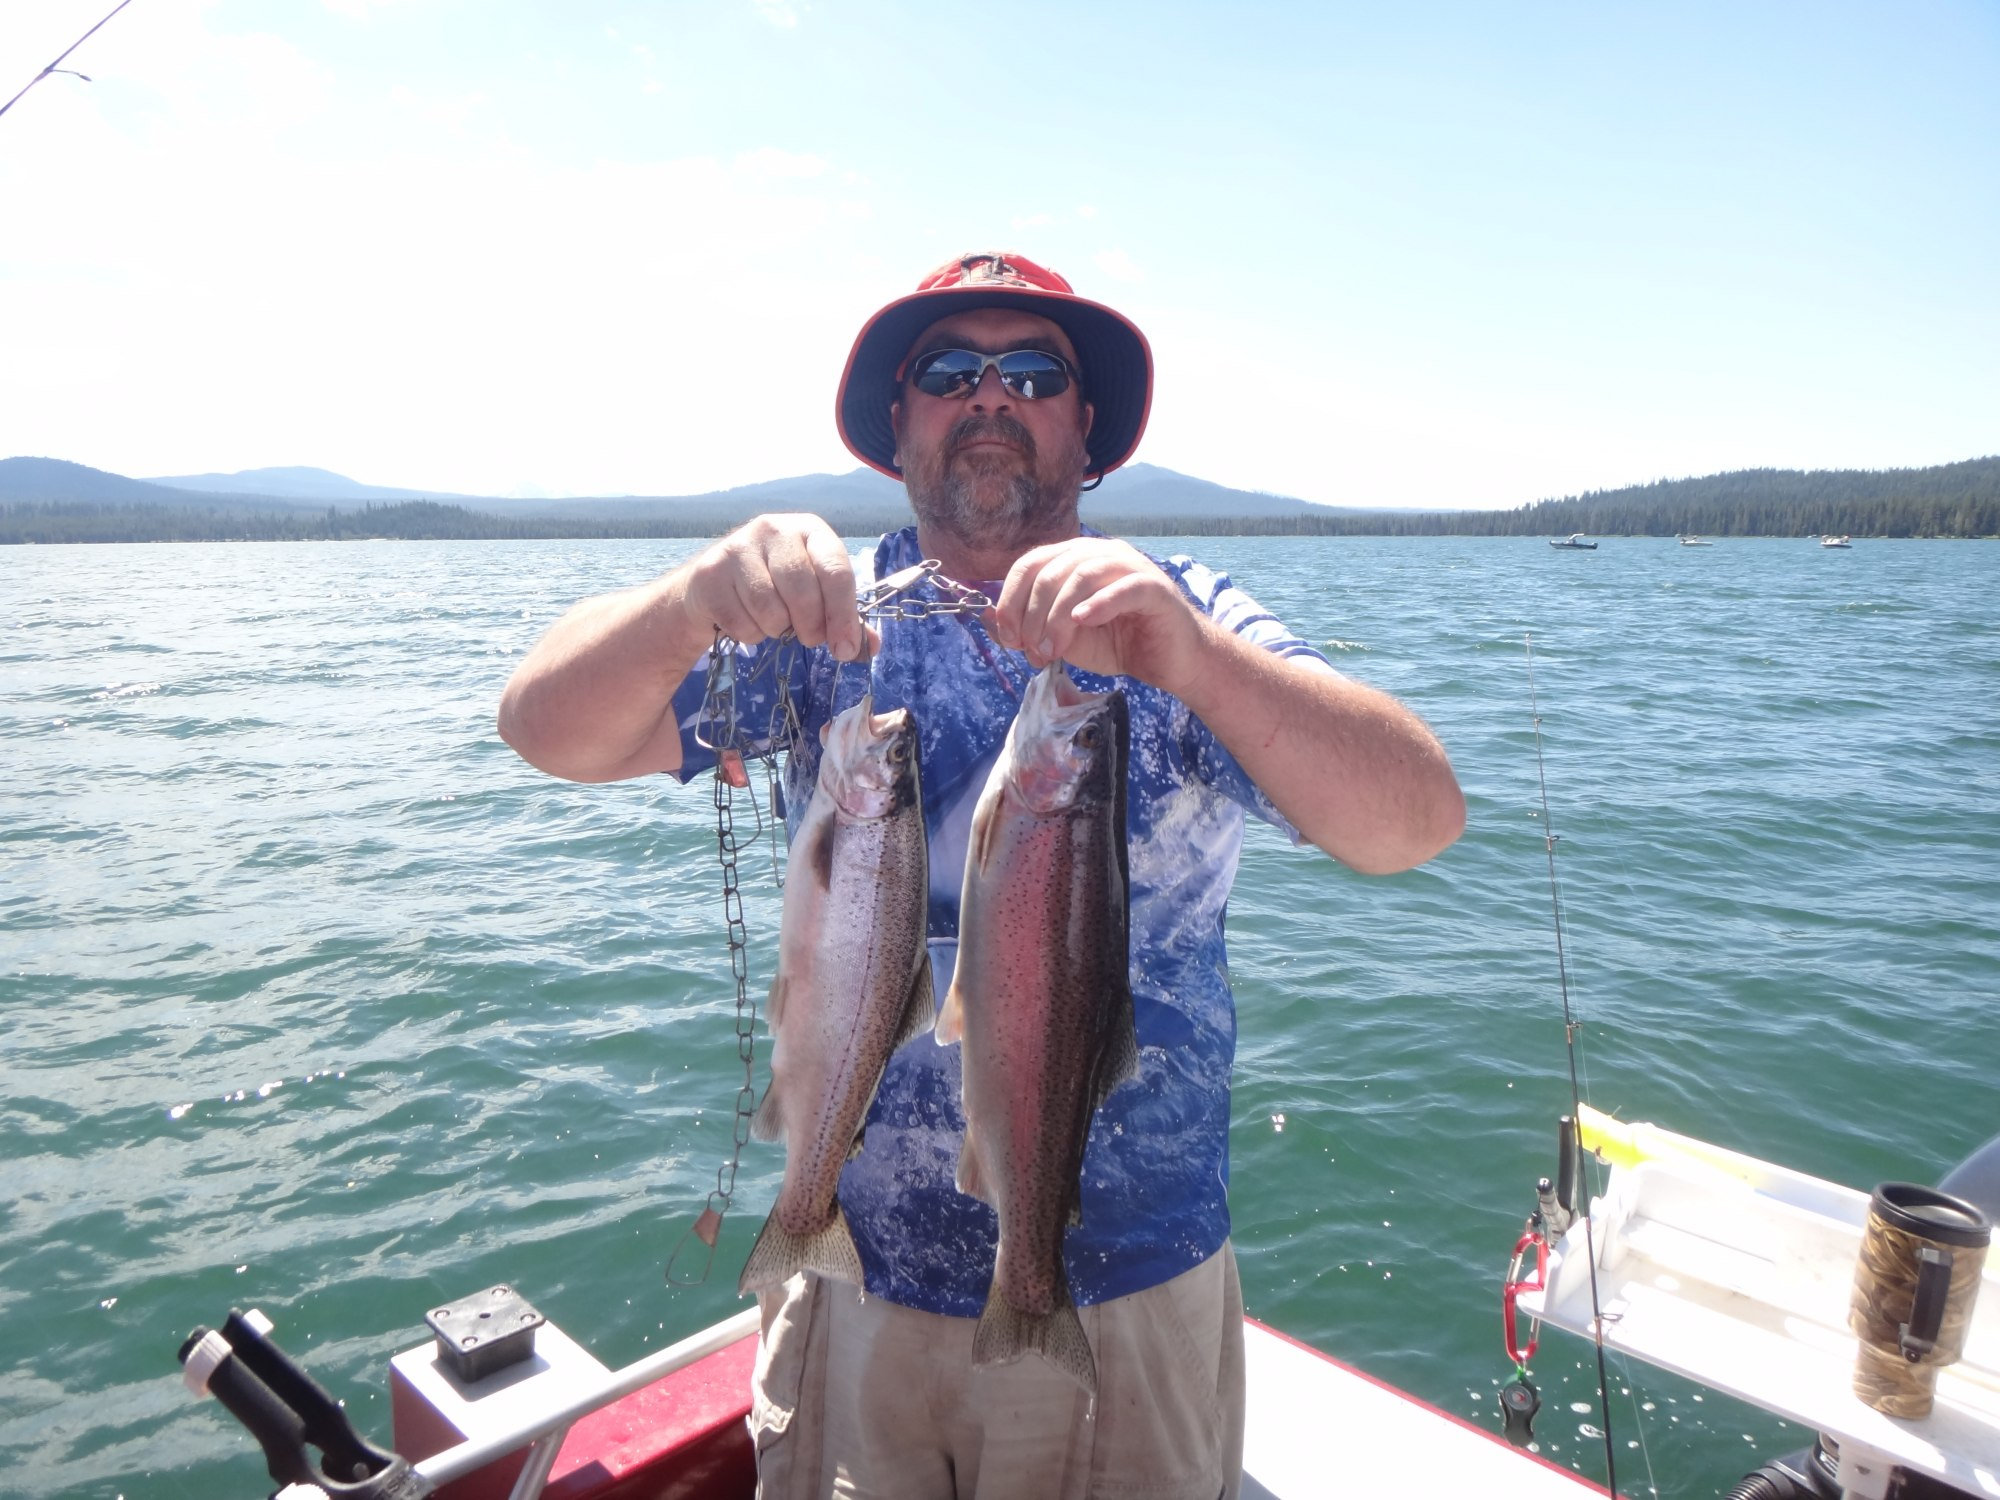 Angler Brad Halleck: Fish of the Week July 24, 2012